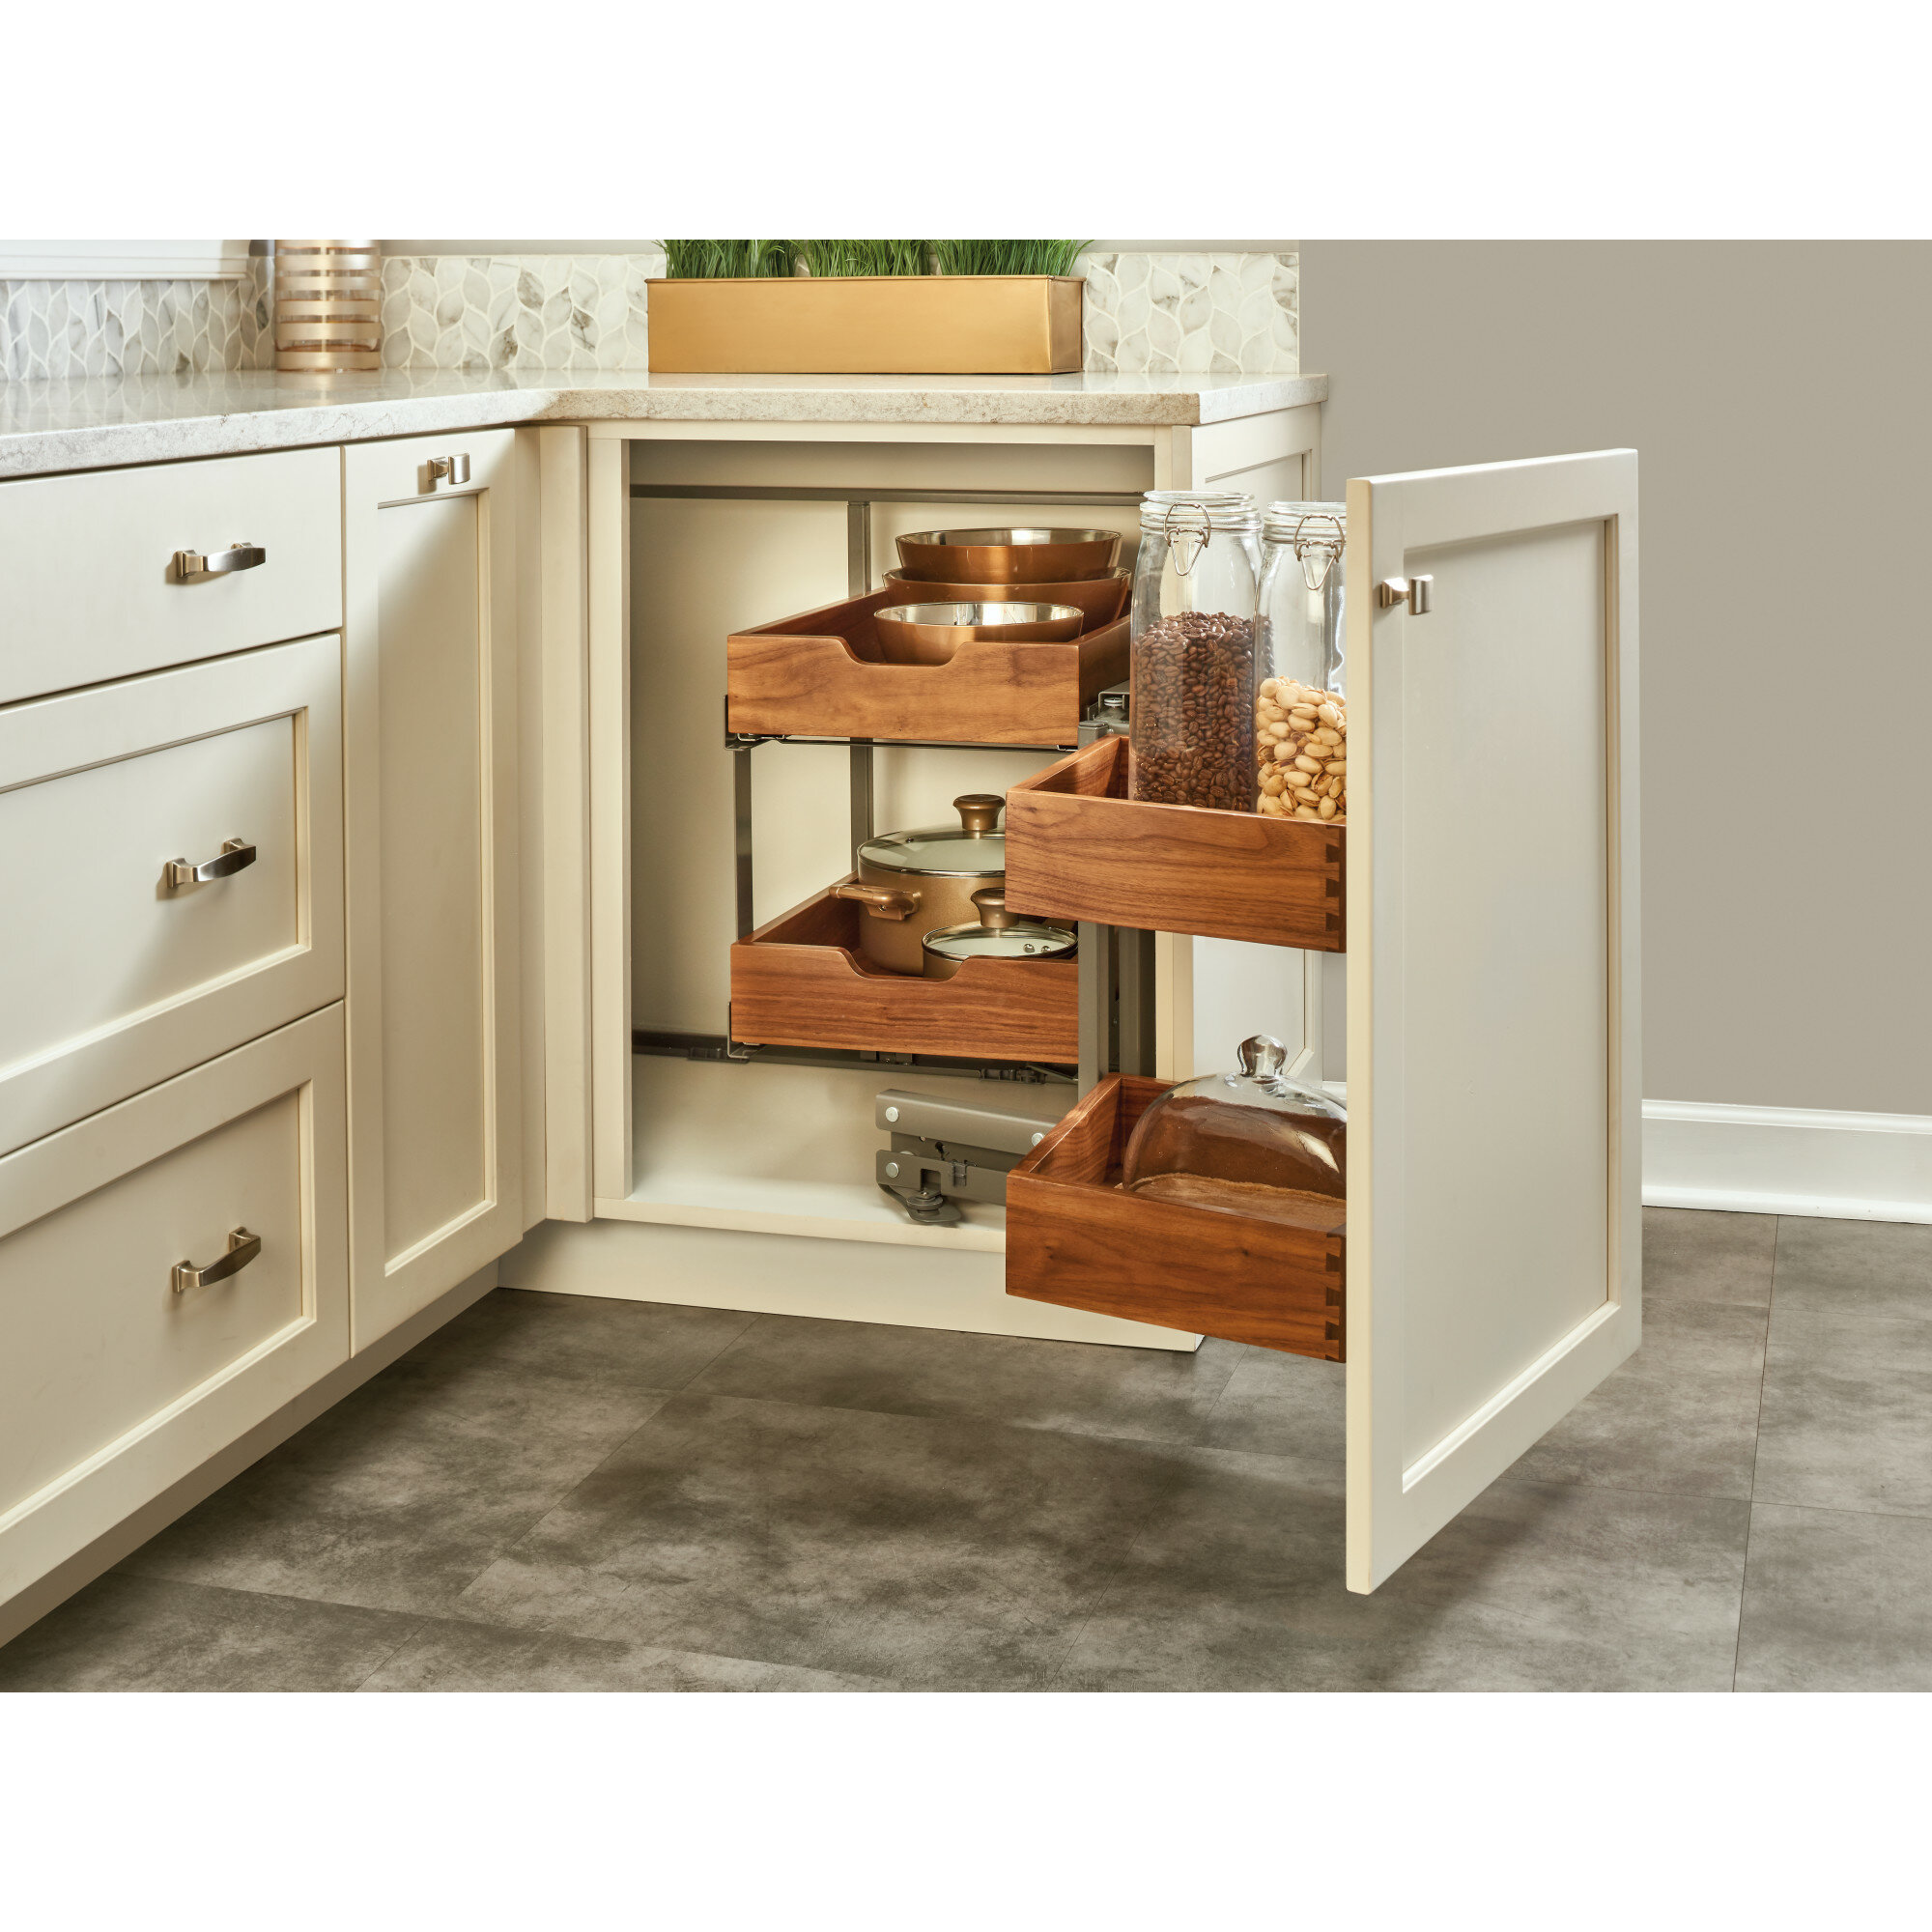 Rev A Shelf Blind Corner Cabinet Organizer Wayfair